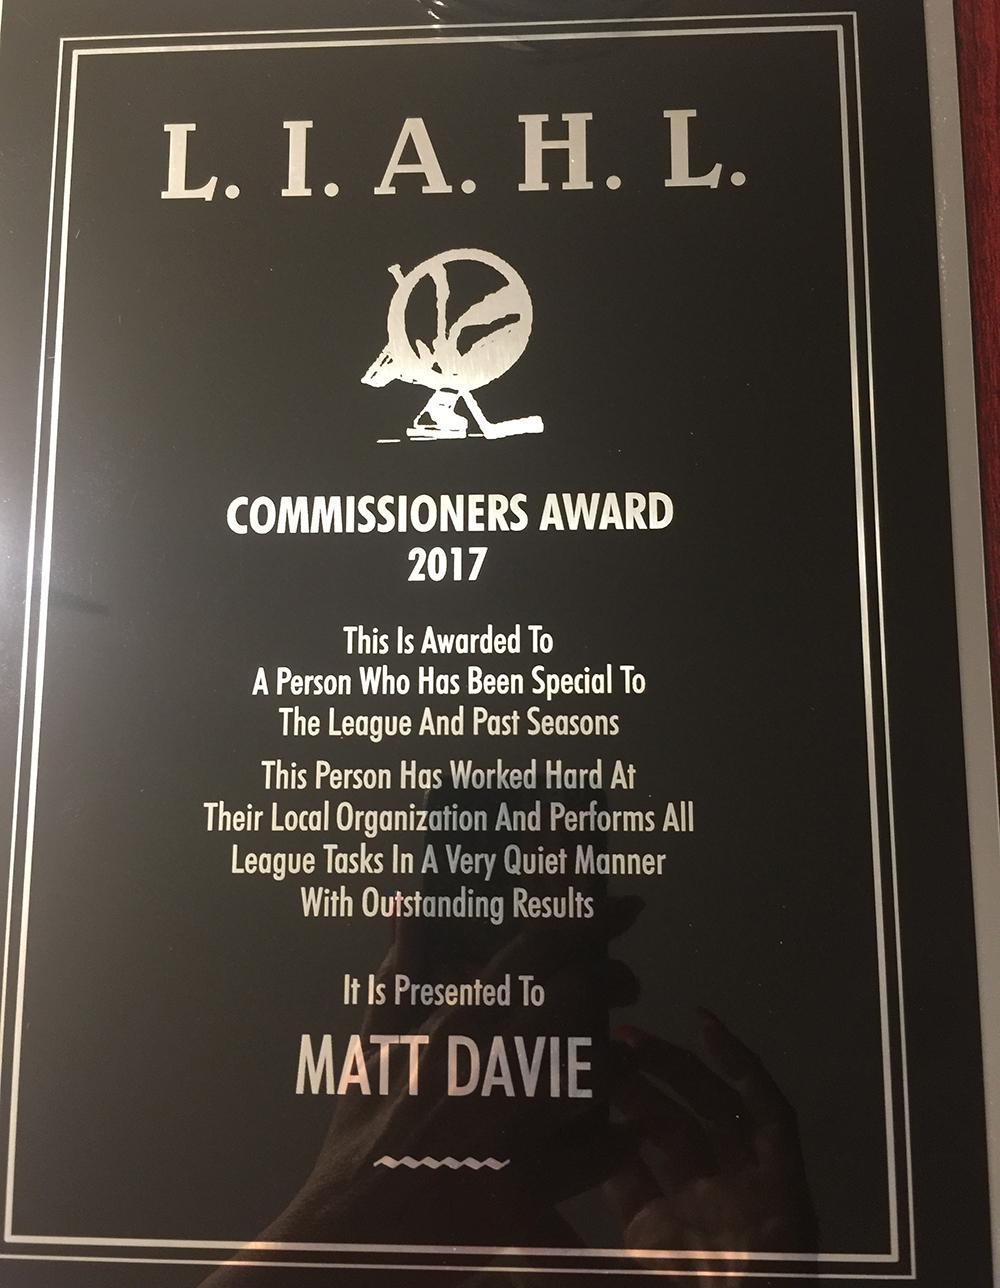 Matt Davie - Commissioner of the year Award